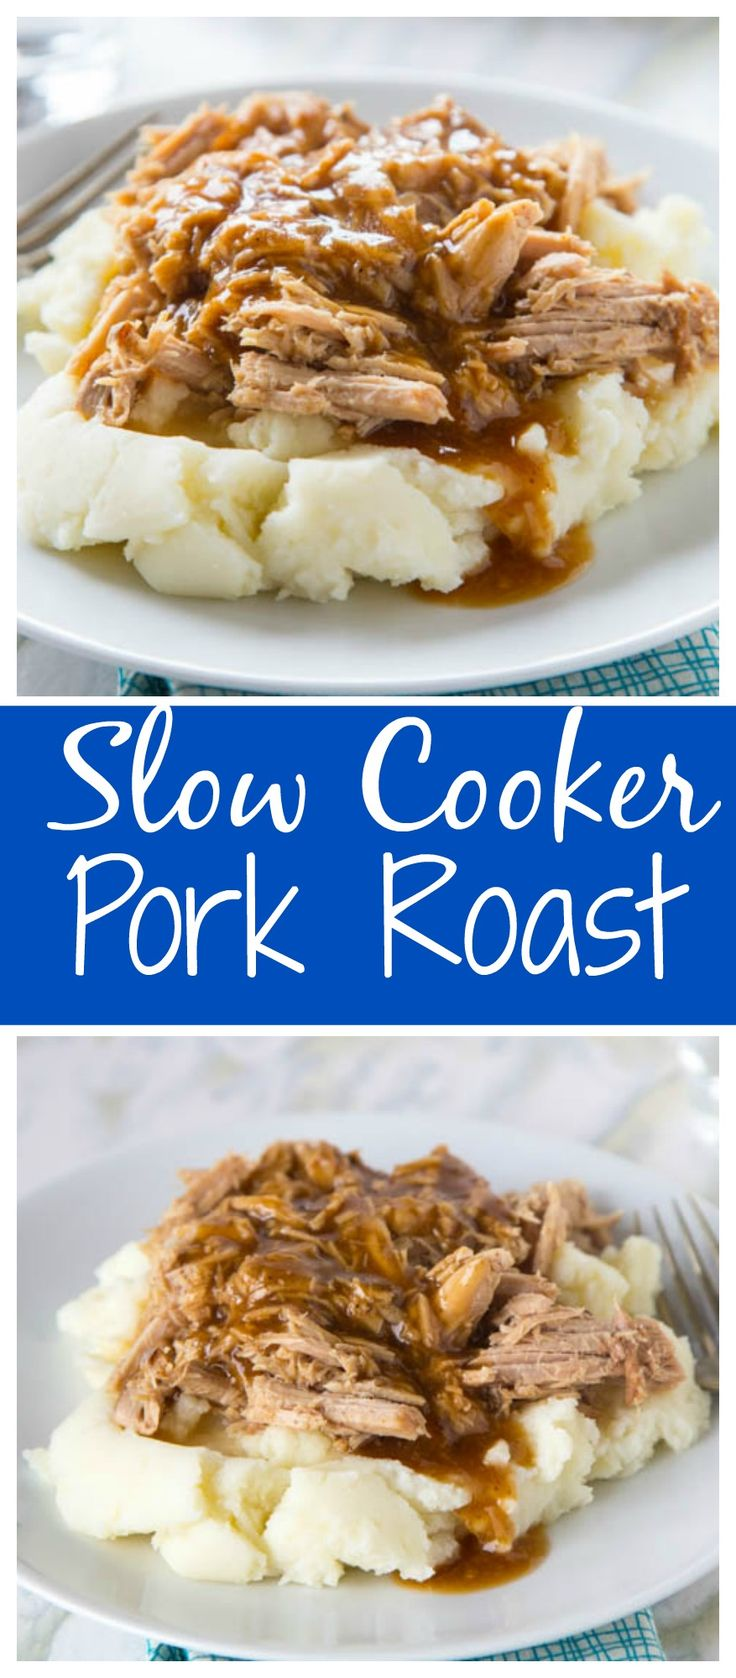 Slow Cooker Pork Roast – crock pot season is here, and it is time for pure comfort food!  Super easy pork roast for any night of the week.